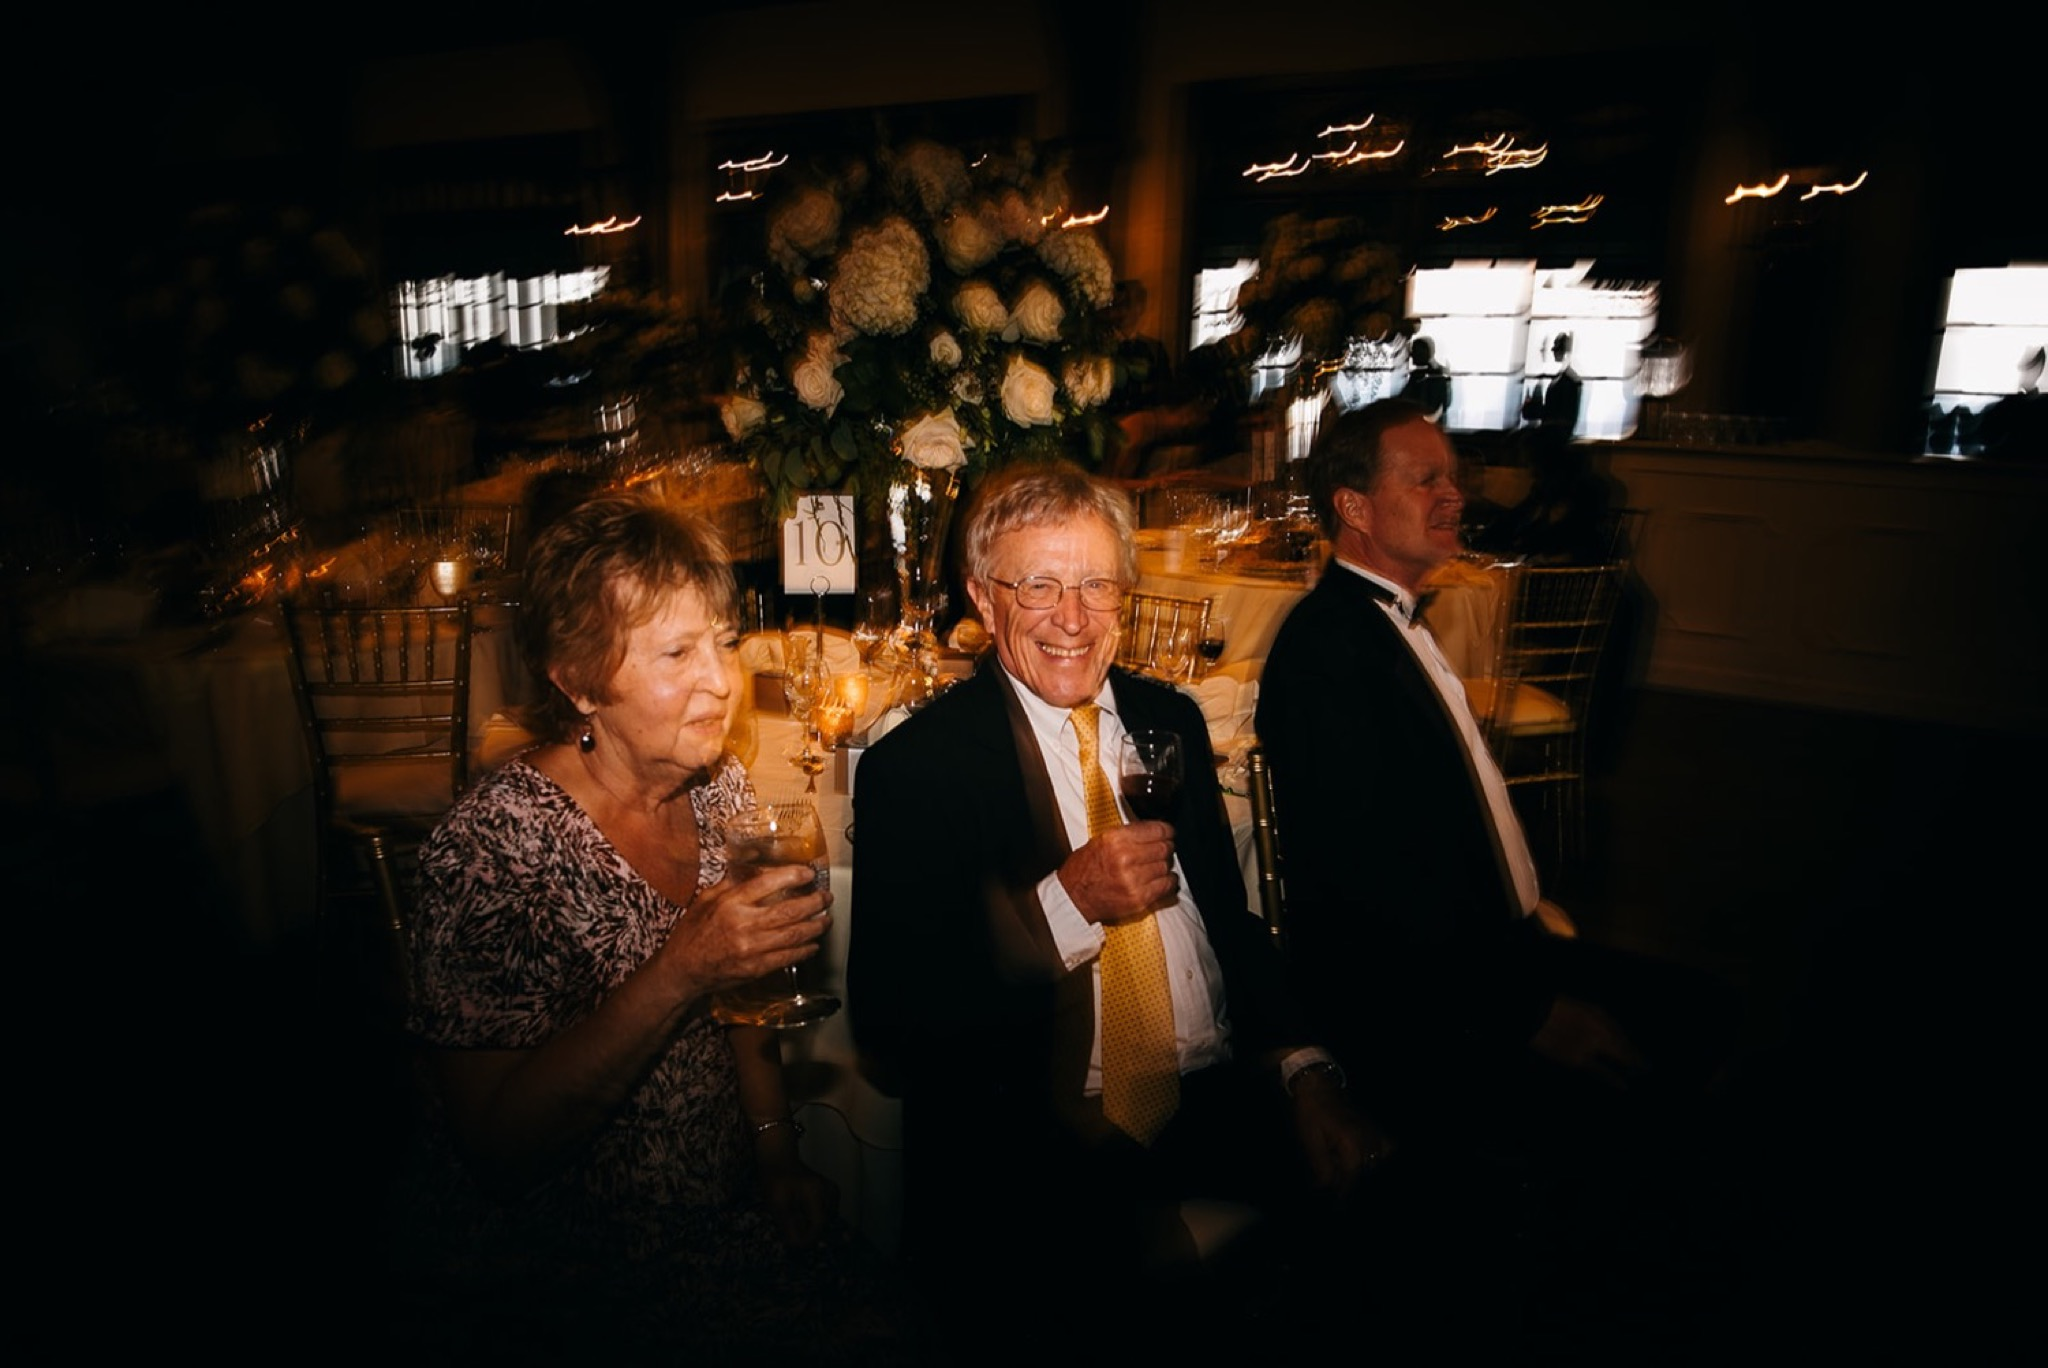 an older couple holds wine glasses and smiles while watching people dance